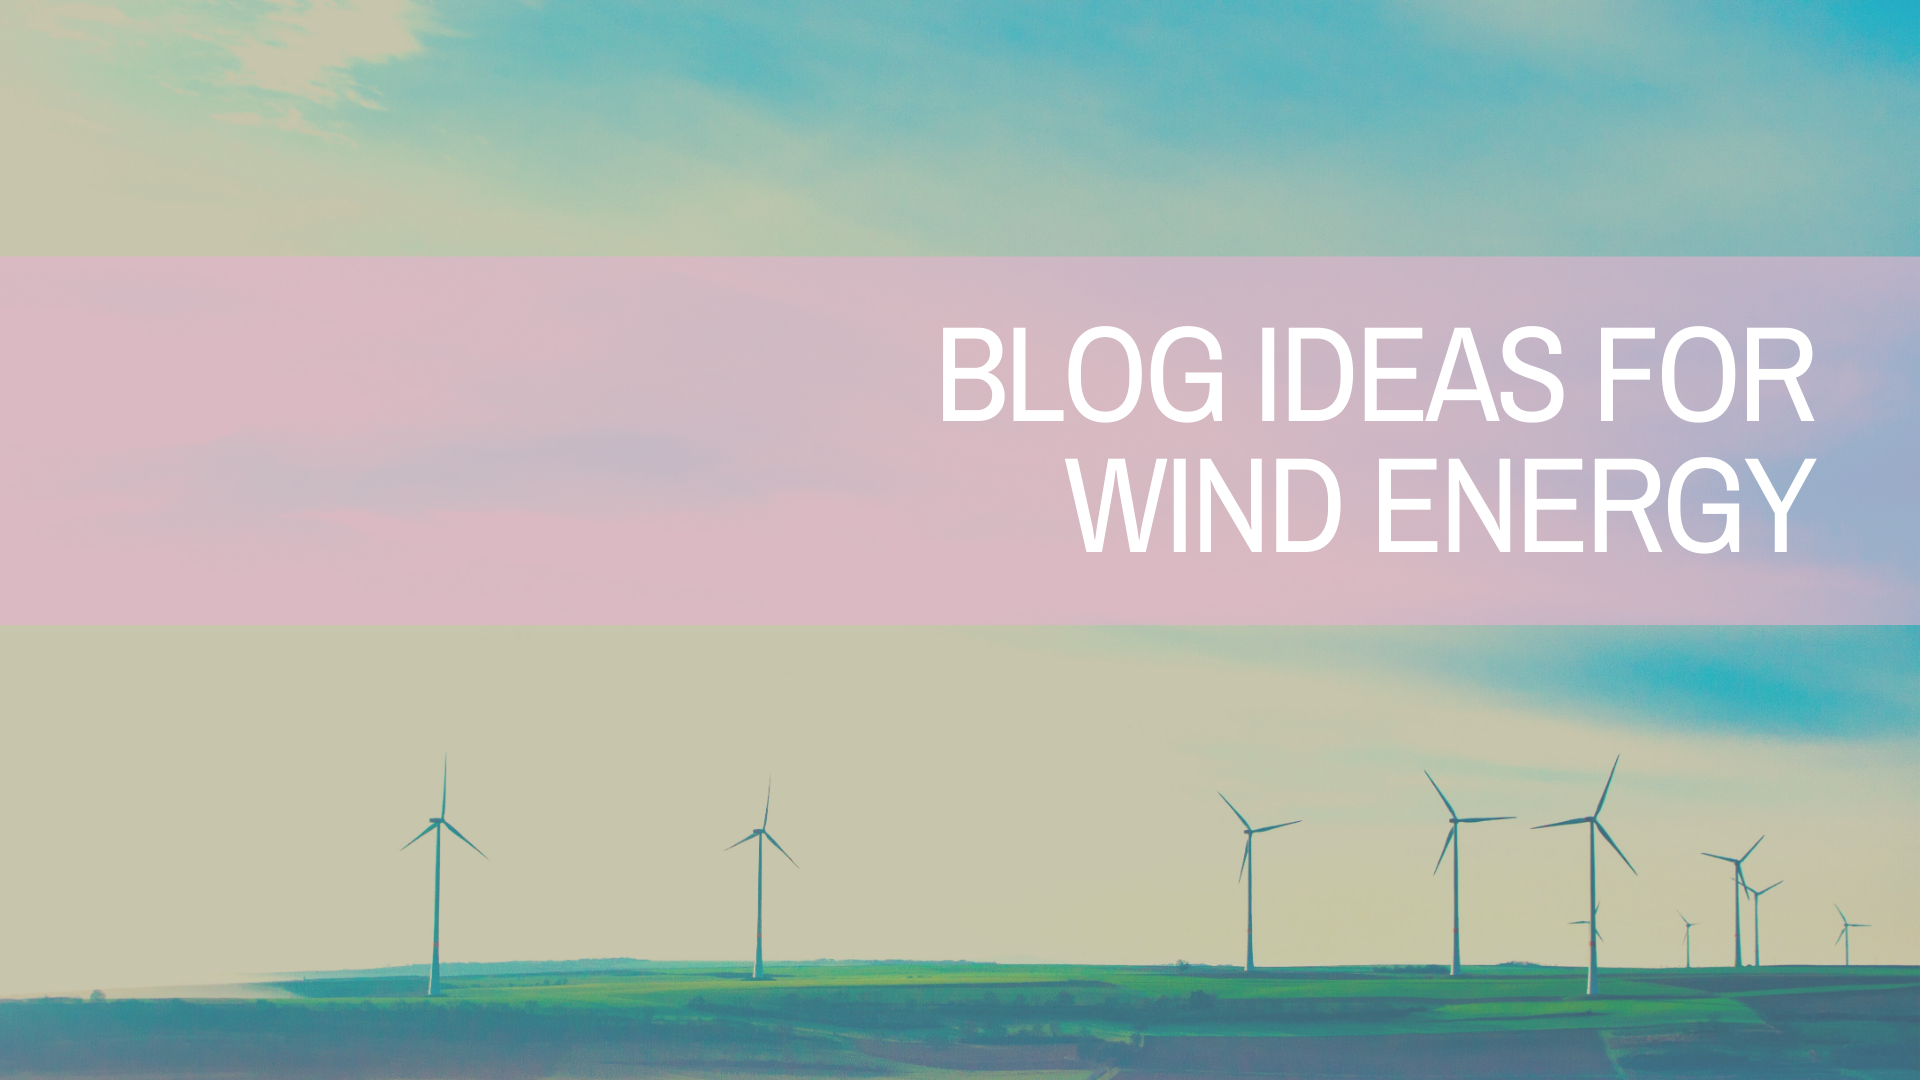 Blog Ideas for Wind Energy